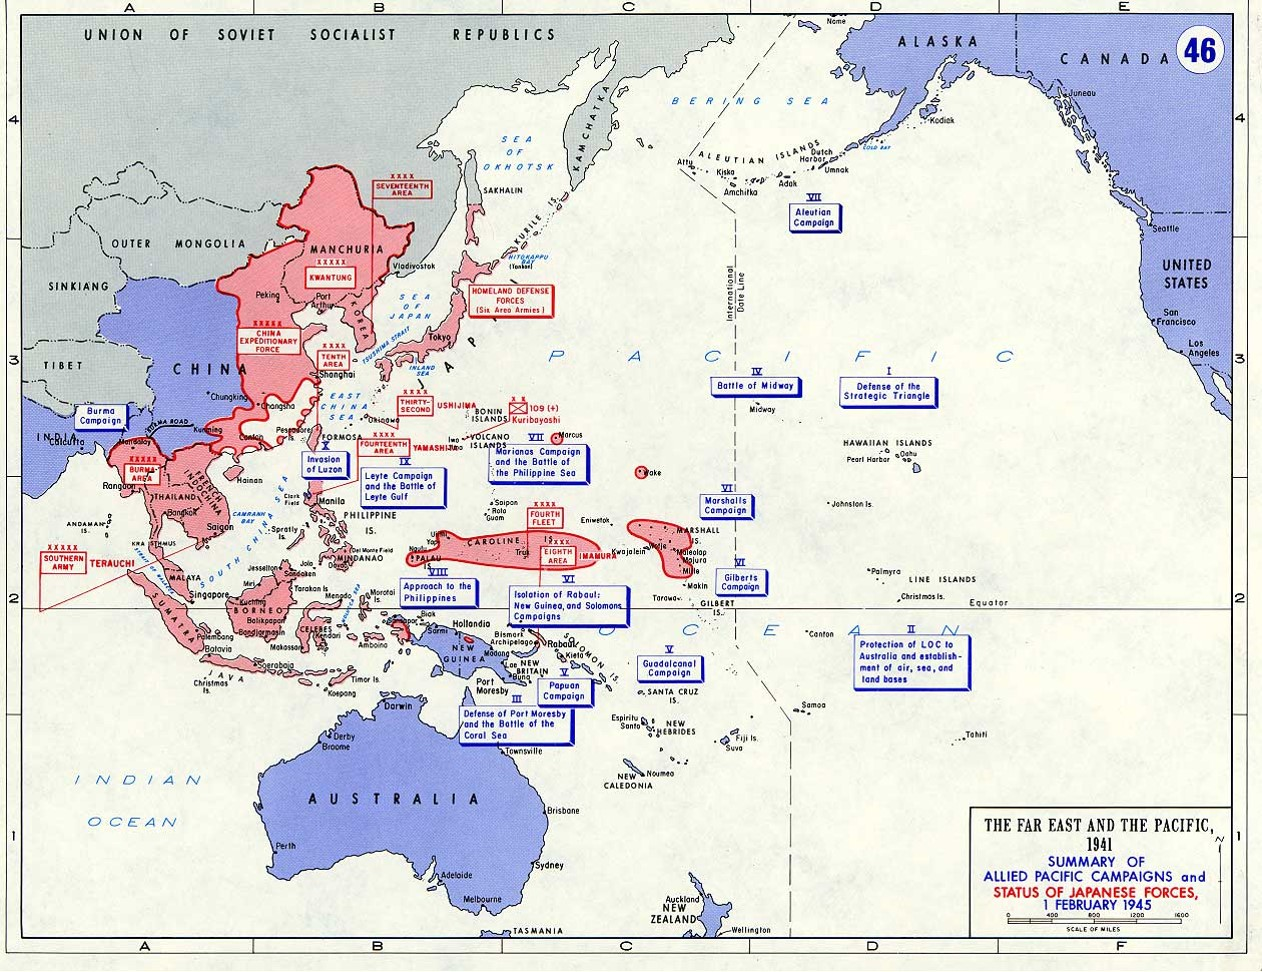 Map Of Asia During Ww2.Remembering Wwii In Maritime Asia Asia Maritime Transparency